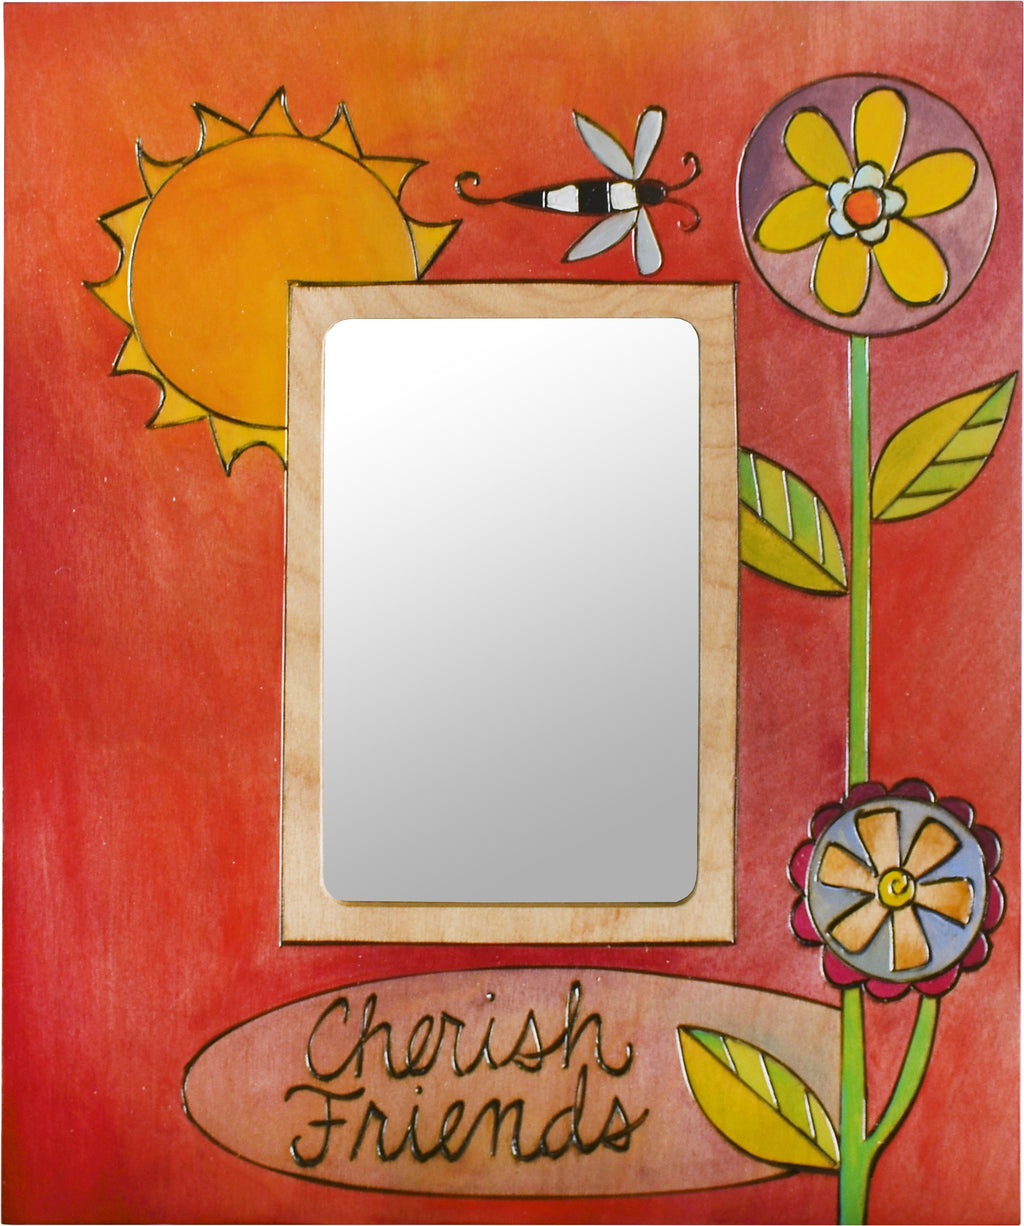 Sticks handmade picture frame with contemporary floral design